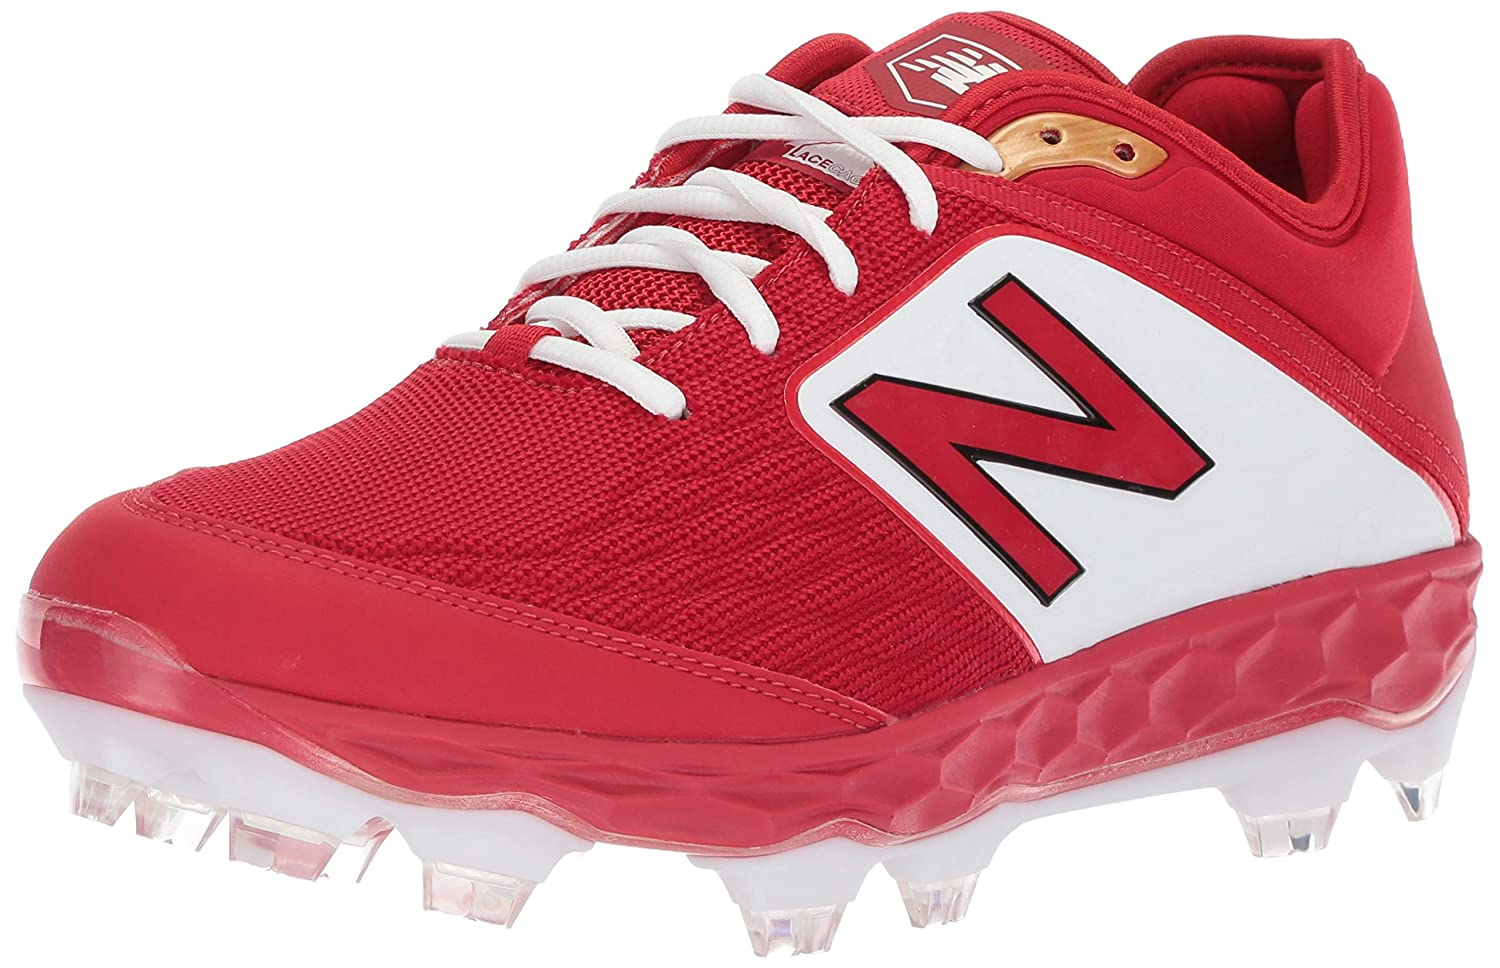 New Balance Men's 3000v4 Baseball schuhe, rot Weiß, 12 D US